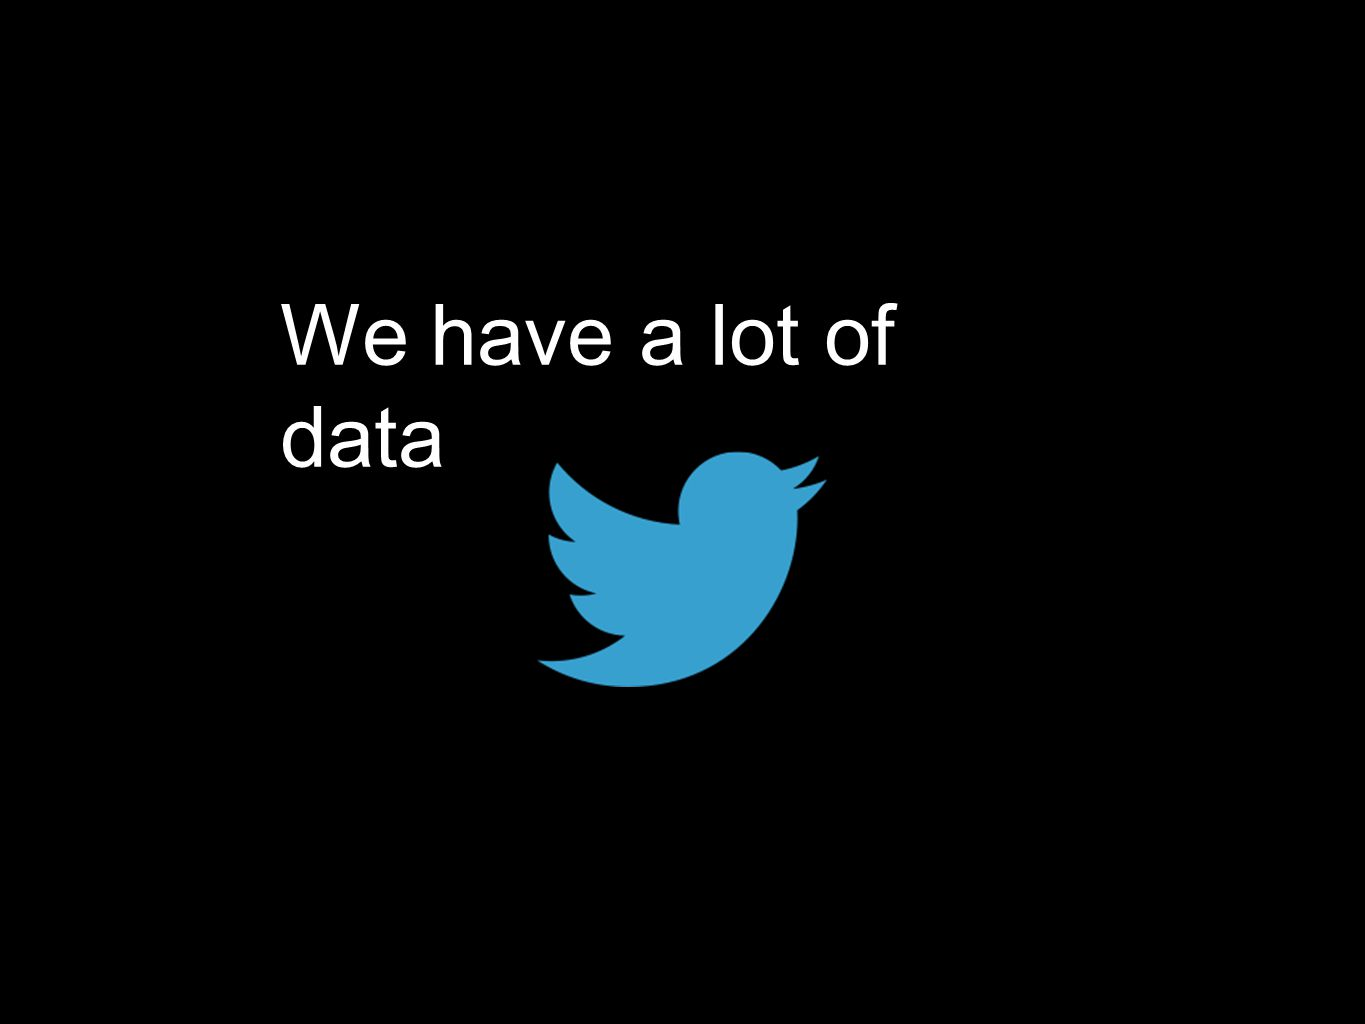 We have a lot of data